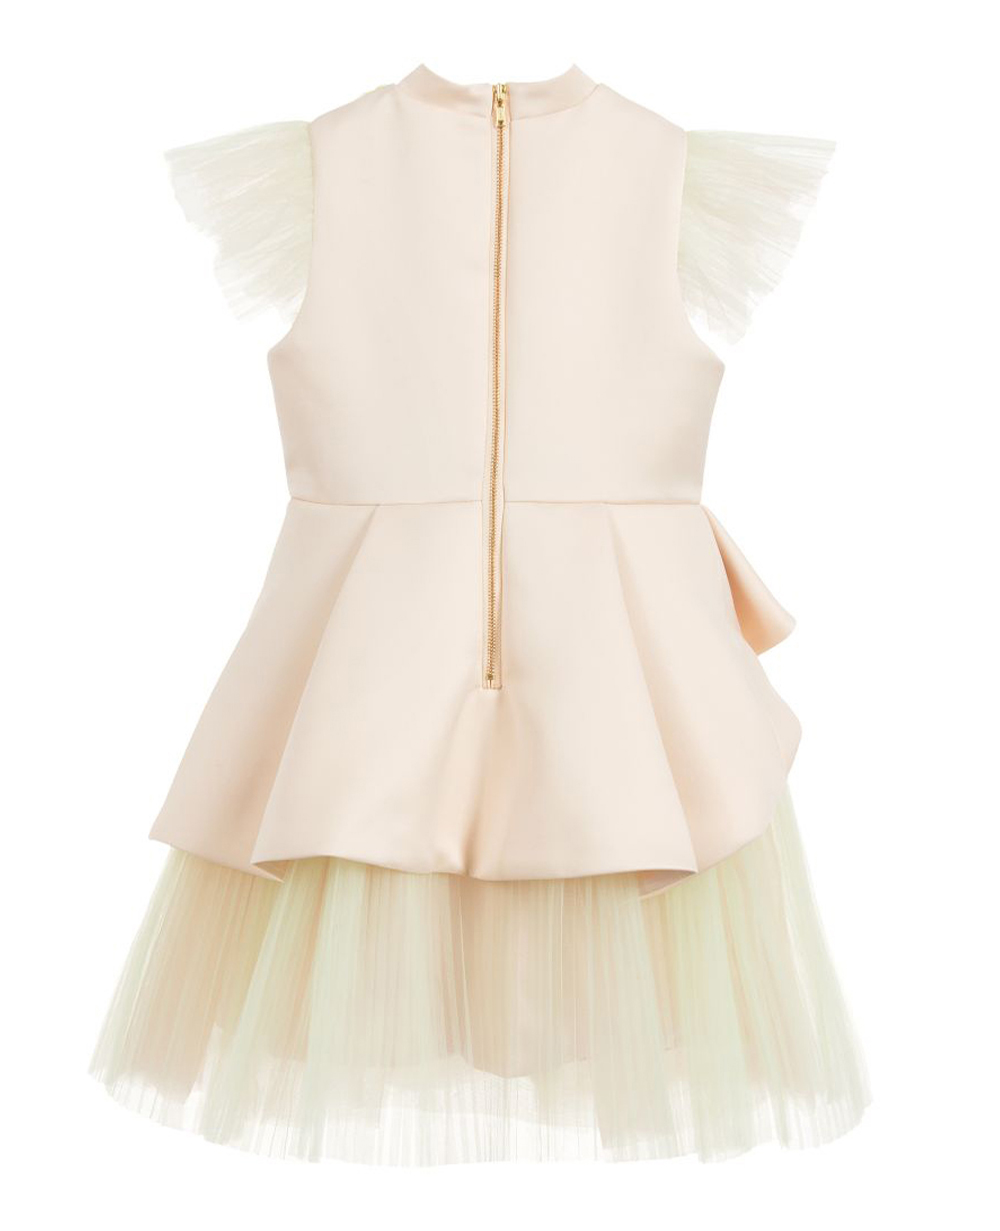 Ivory Satin & Tulle Dress  Sequin Party Dress